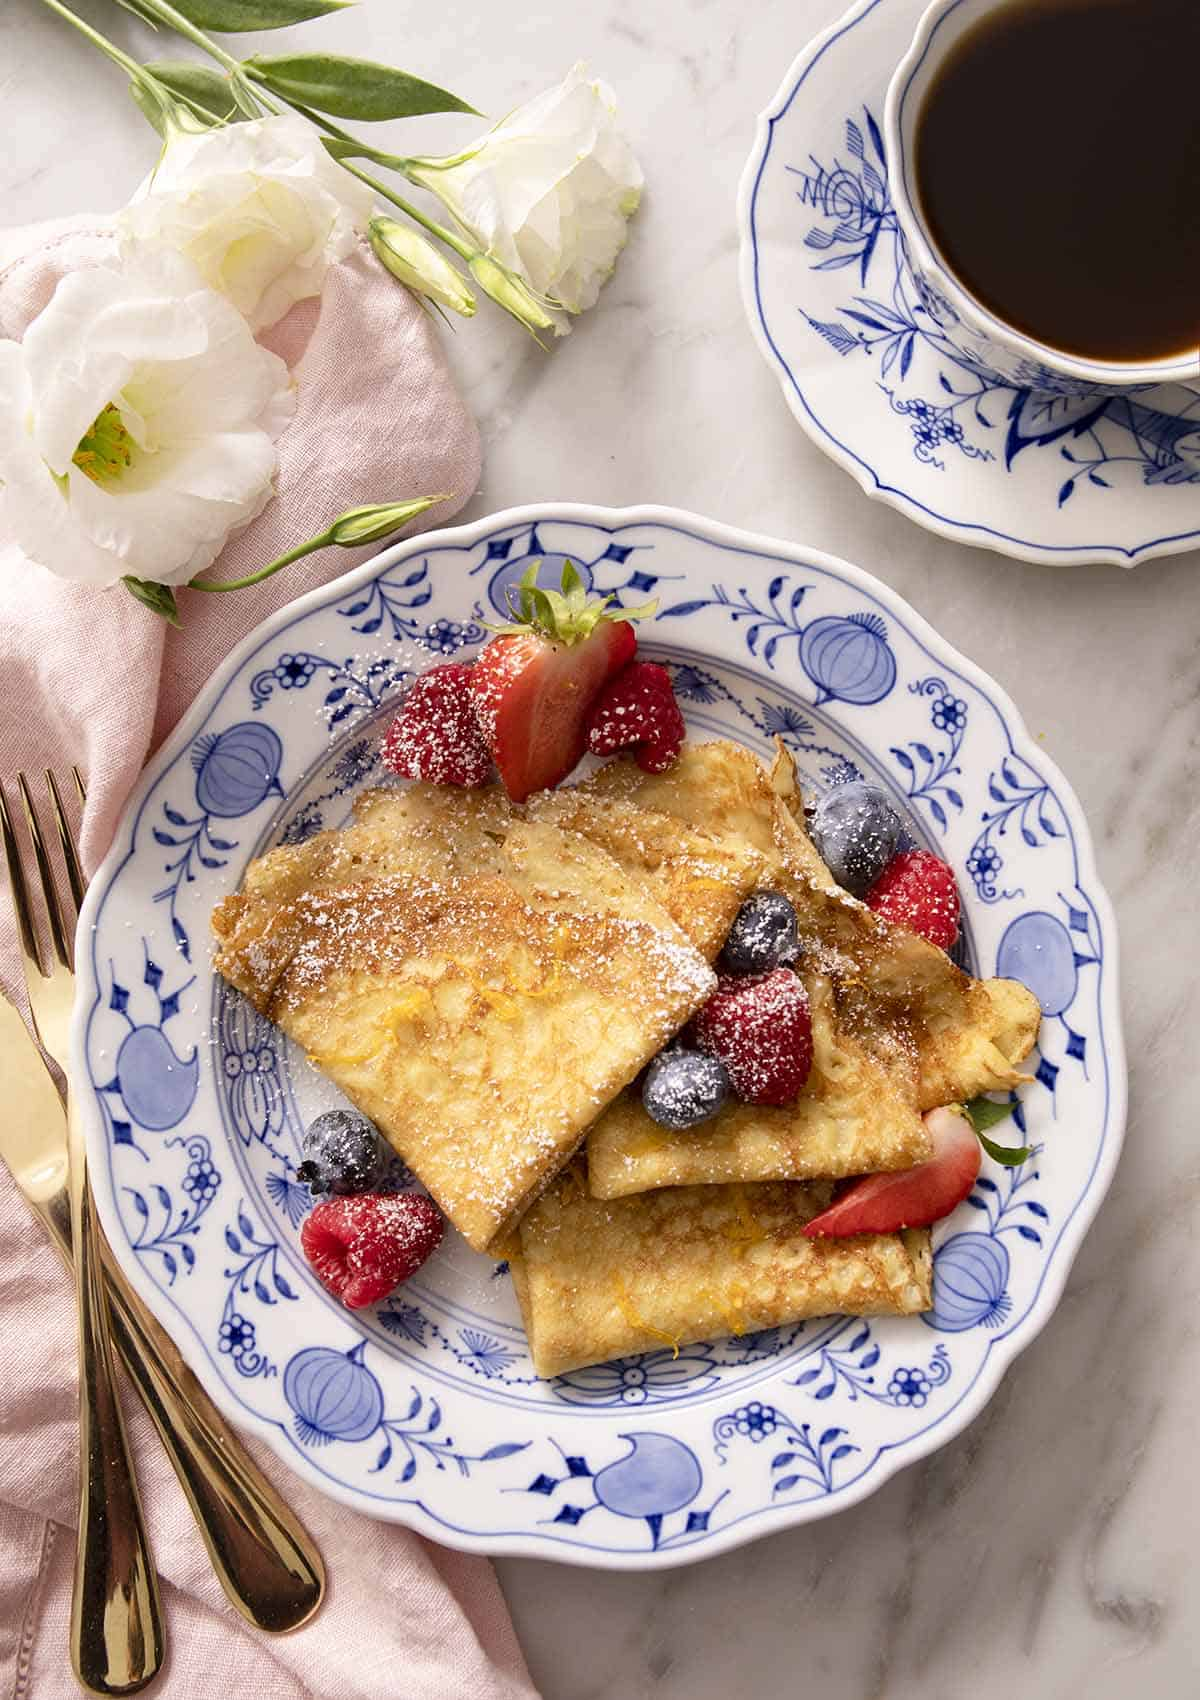 Folded crepes with berries and powdered sugar on a blue and white plate.